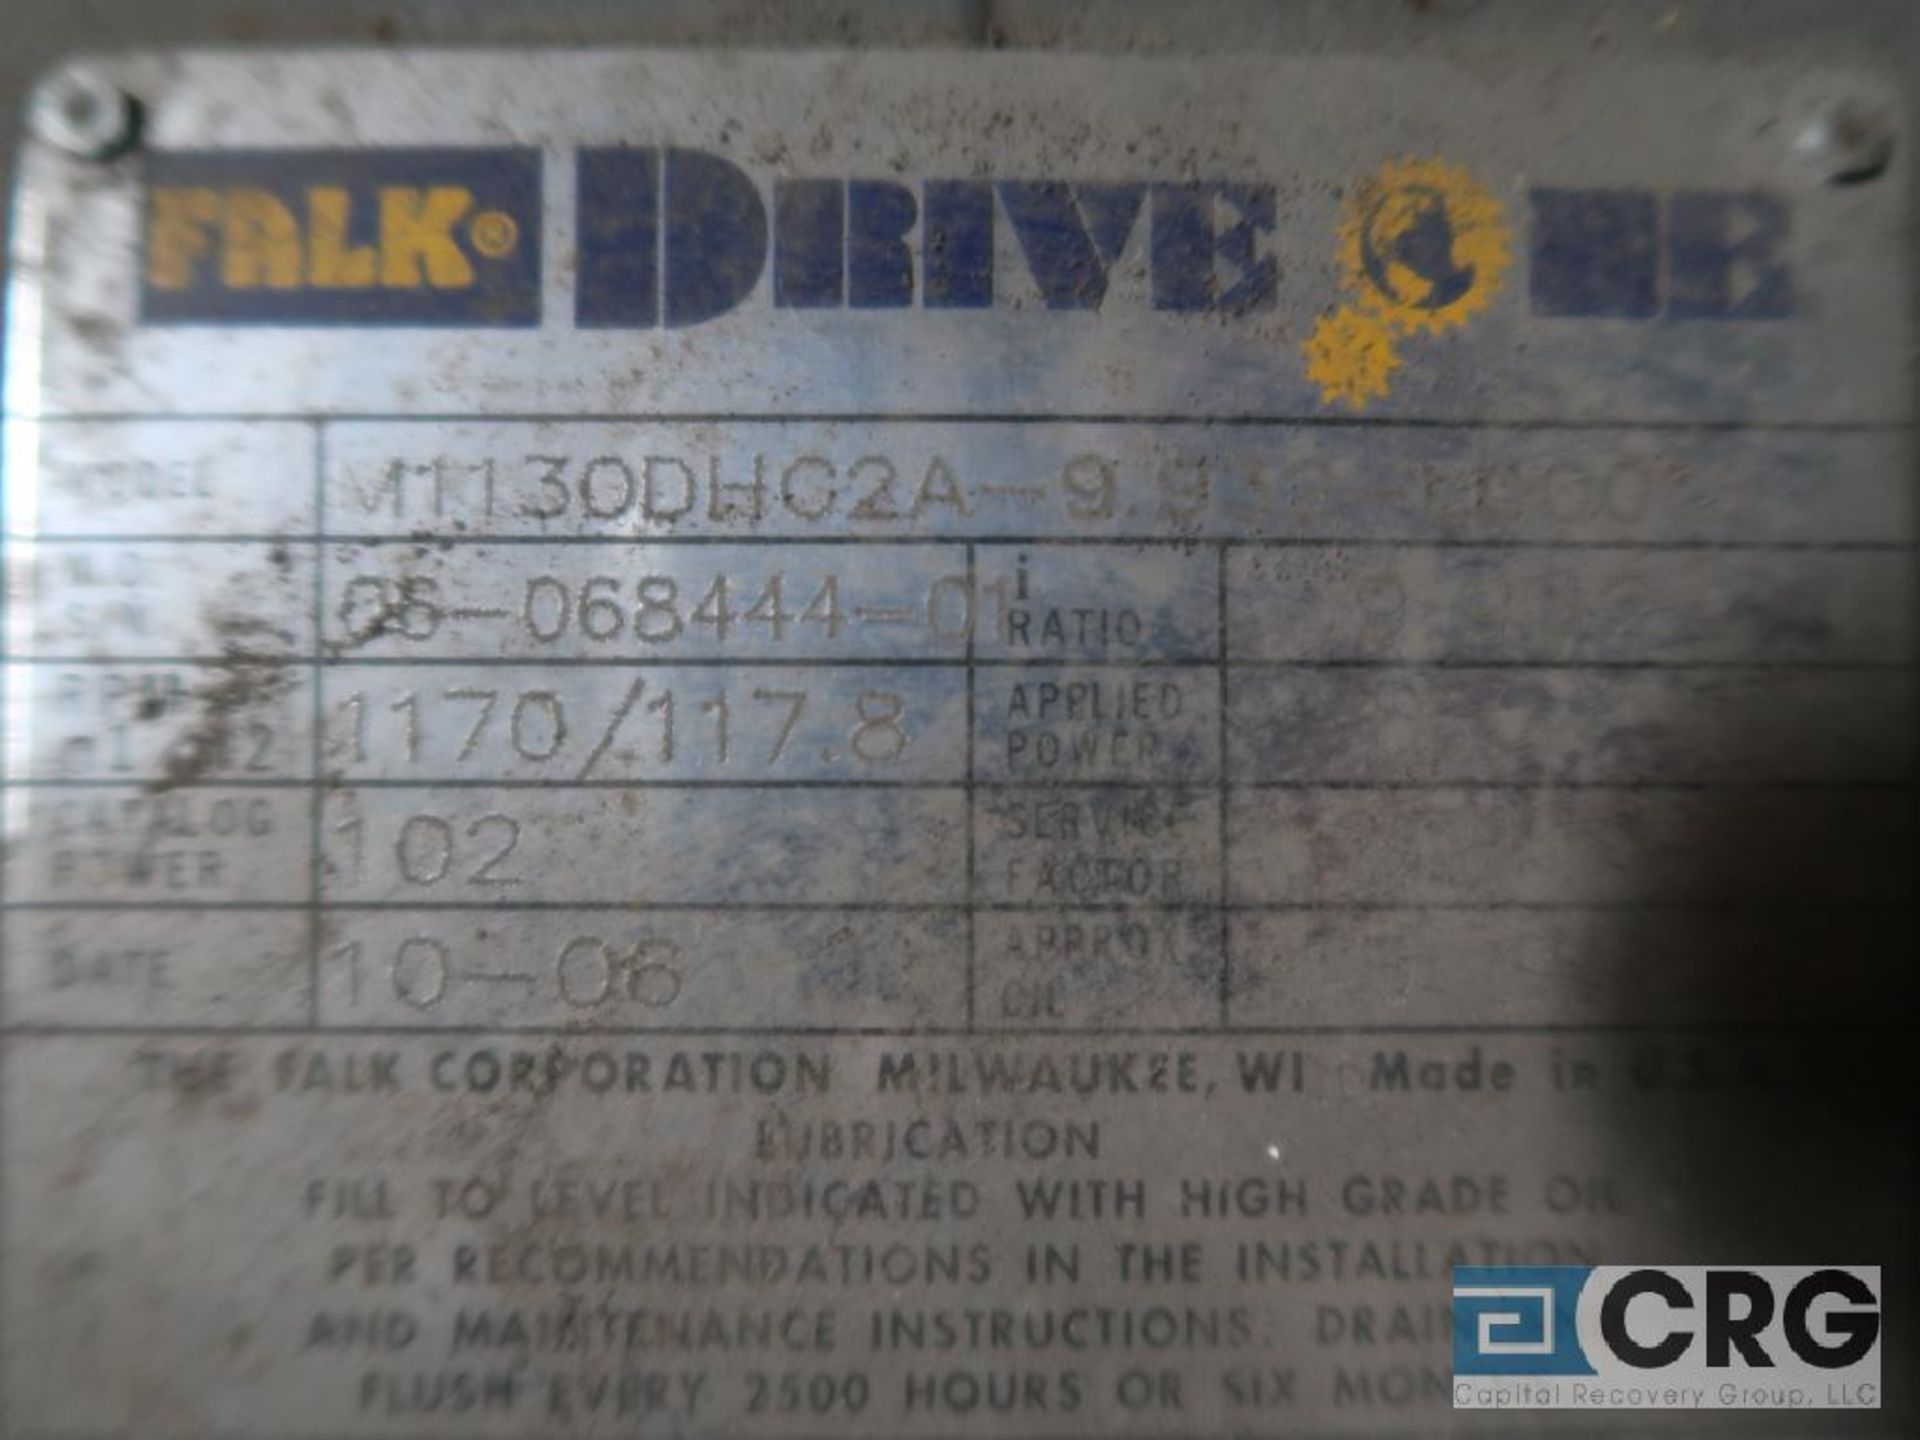 Falk M1130DHC 2A gear drive, ratio-9.932, RPM 1170/117.8, service rate HP. 25, s/n 068444C1 (Next - Image 3 of 3